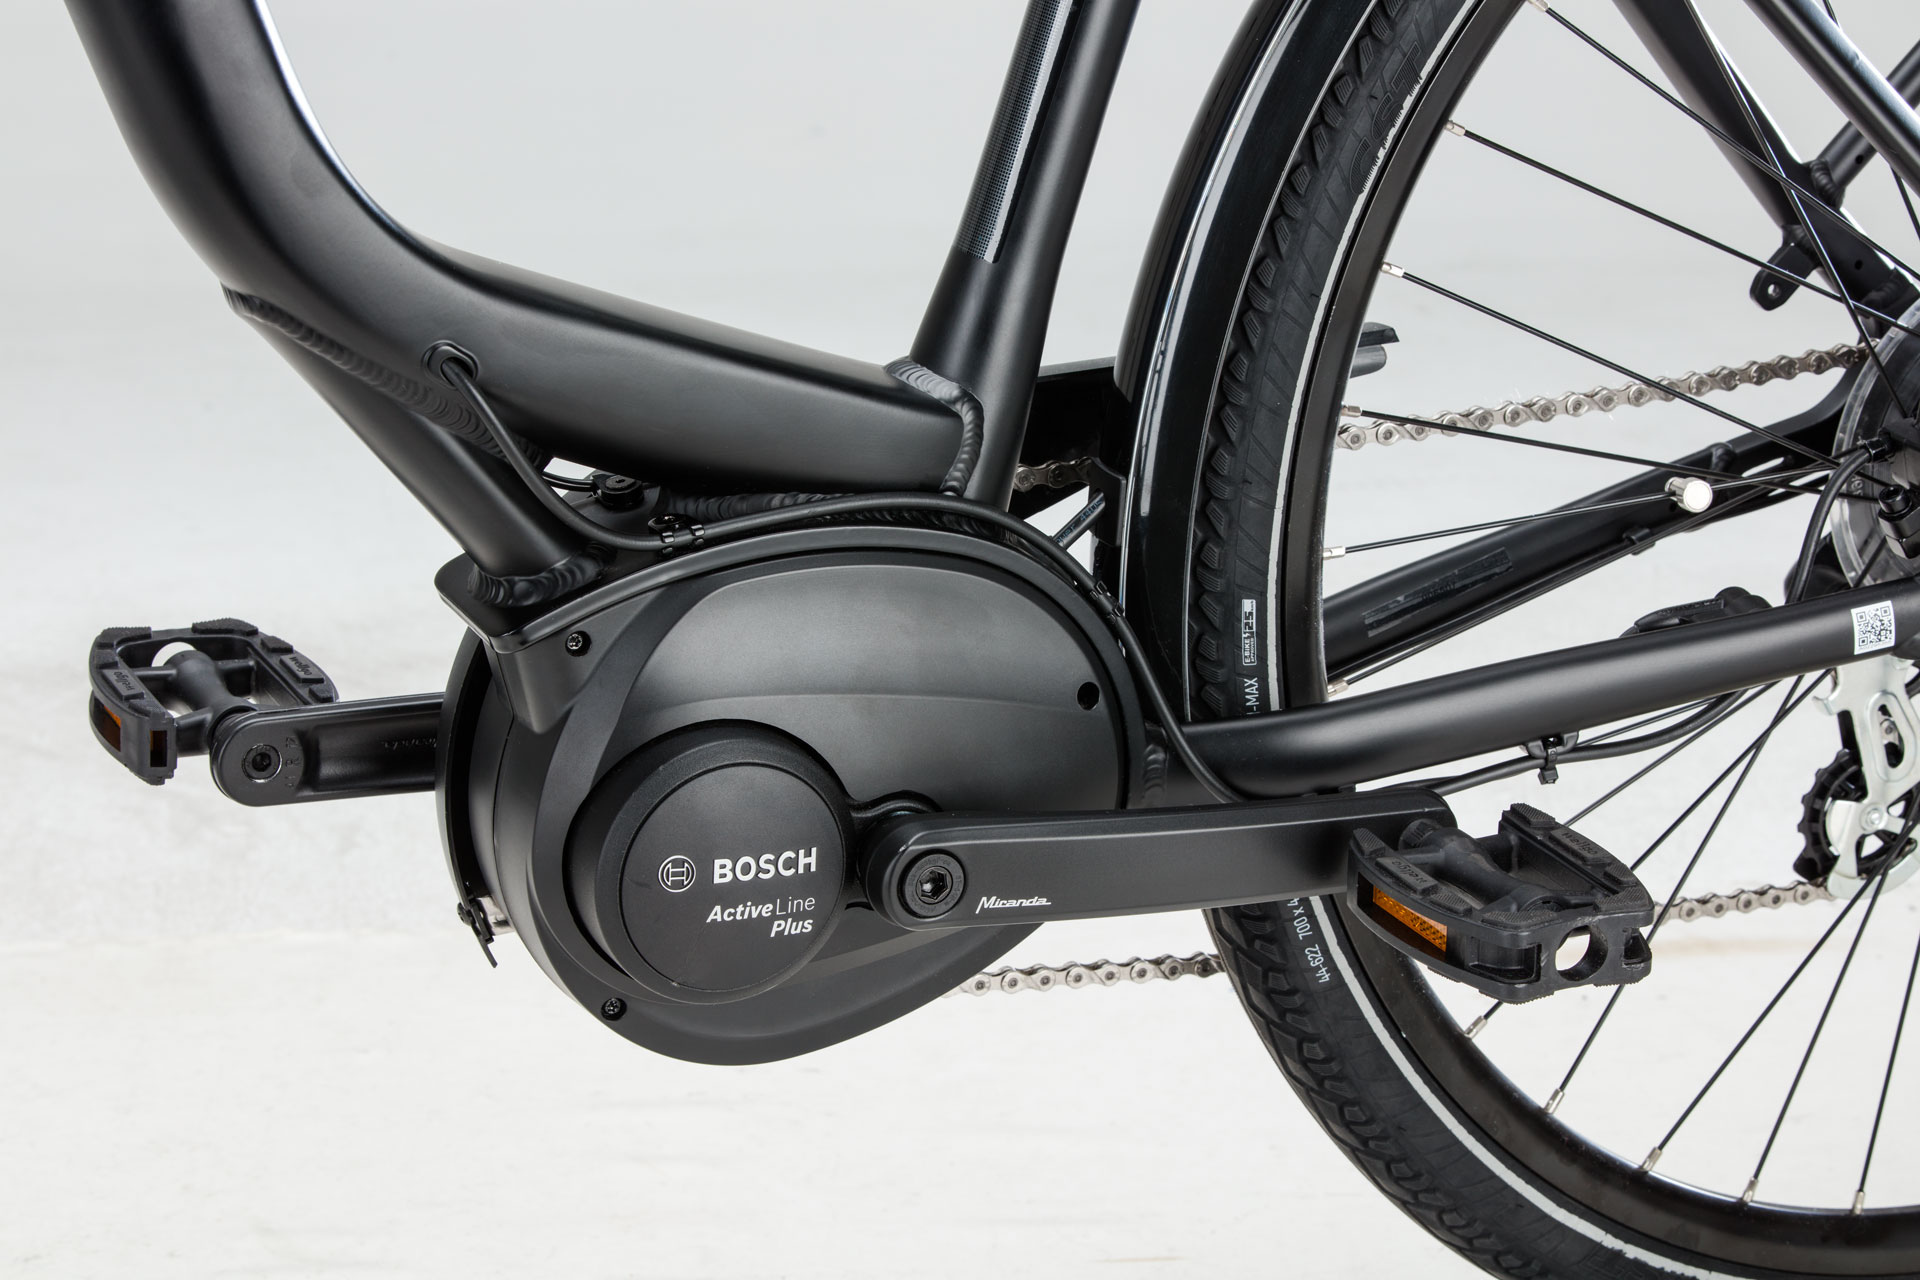 Bosch Active Line Plus motor